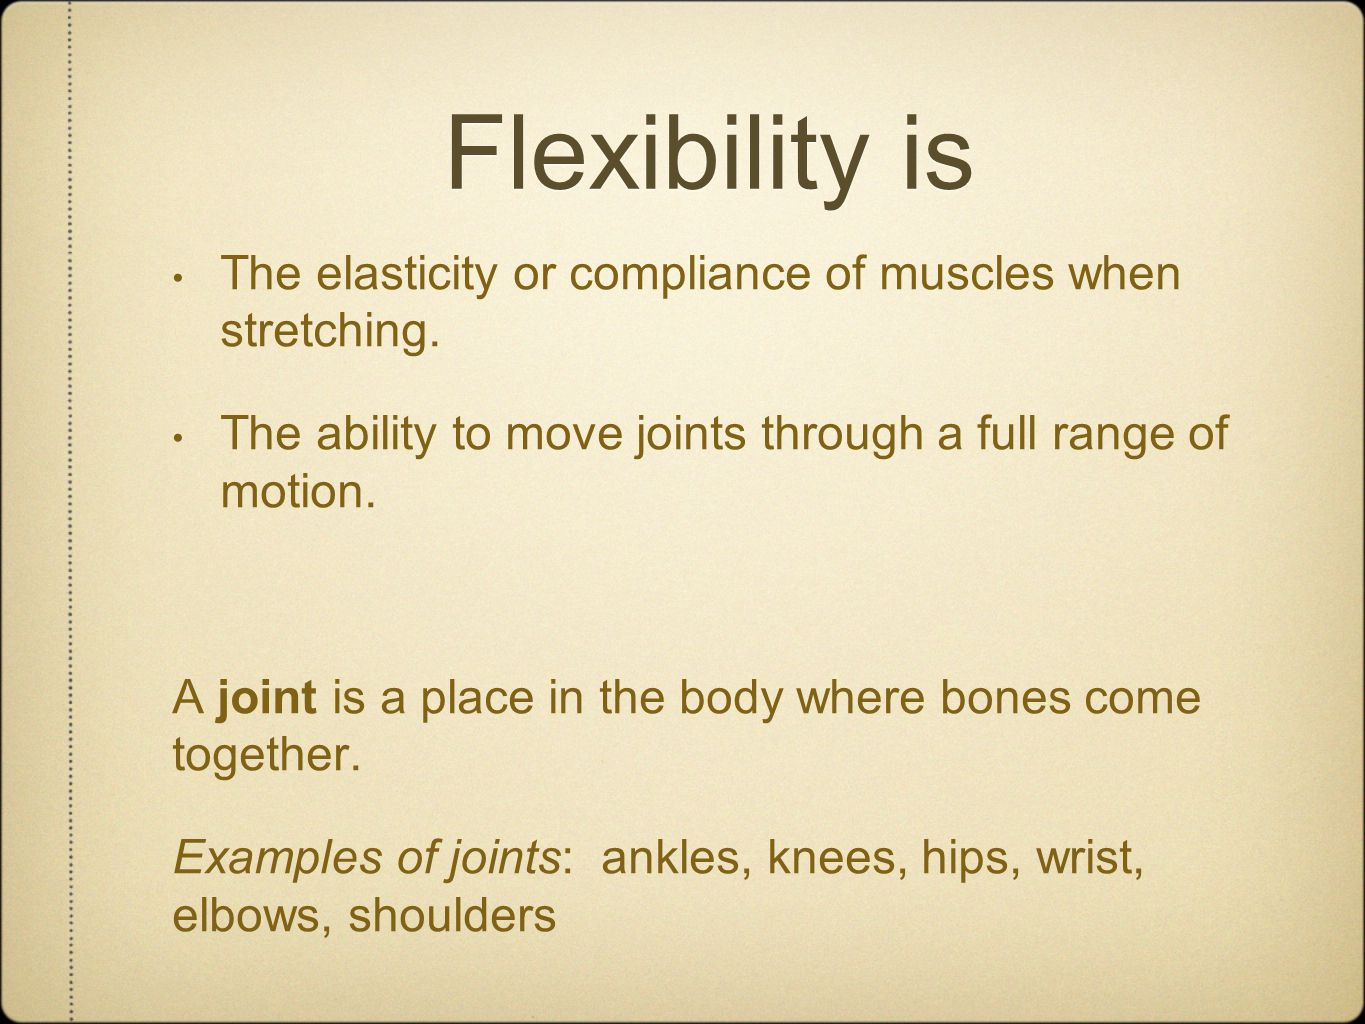 Flexibility is The elasticity or compliance of muscles when stretching.